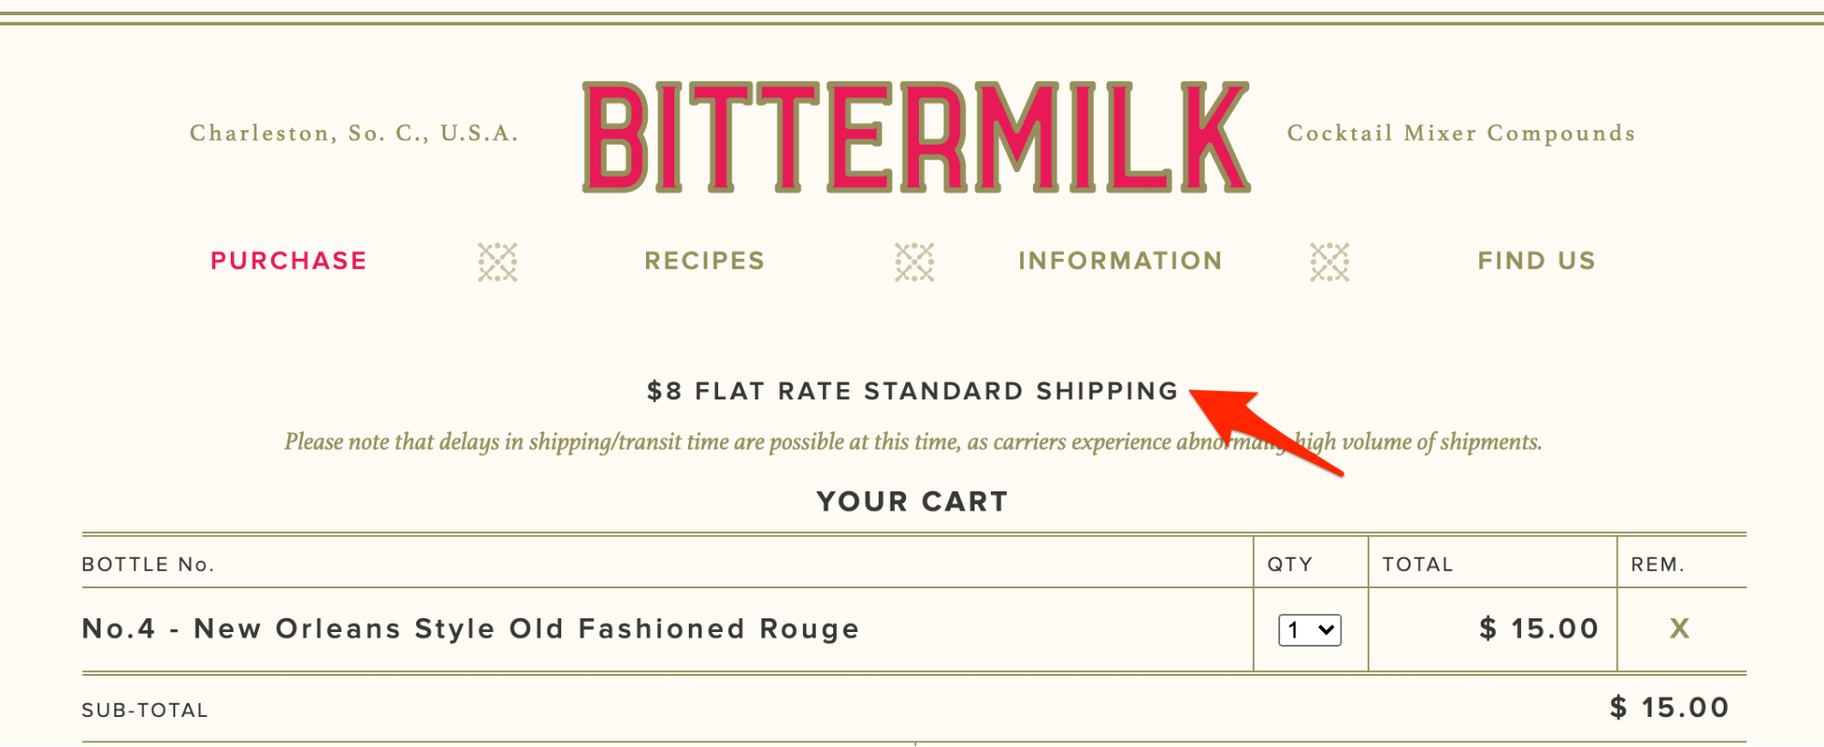 Ecommerce Shipping Rates: Bittermilk